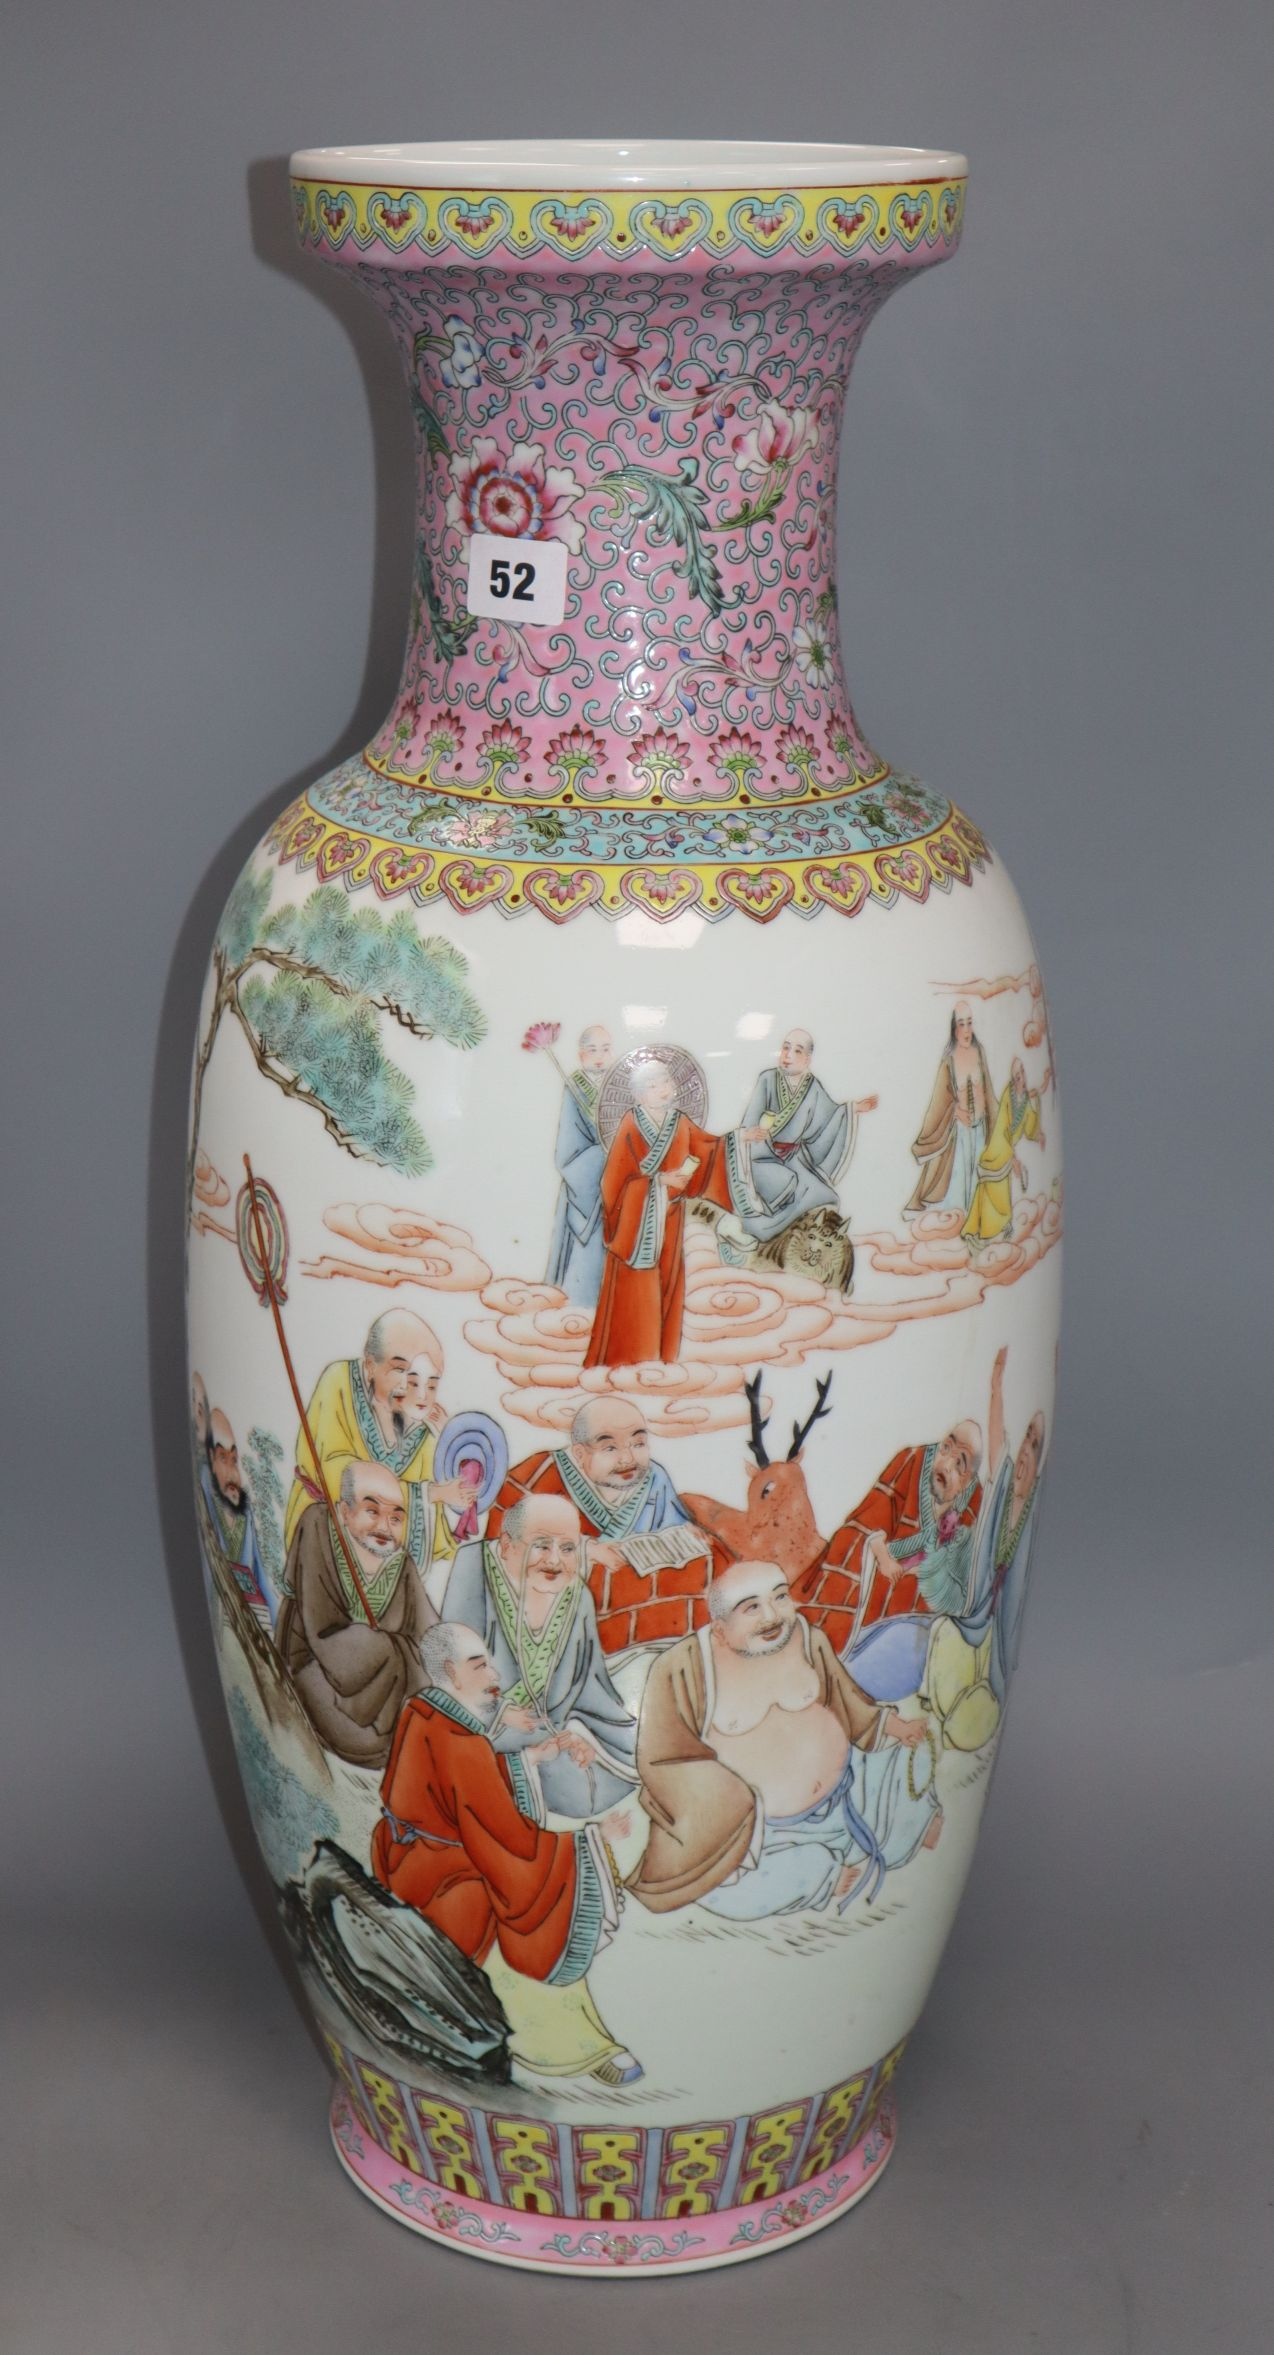 Lot 52 - A Chinese famille rose vase, 20th century height 62cm (a.f.)